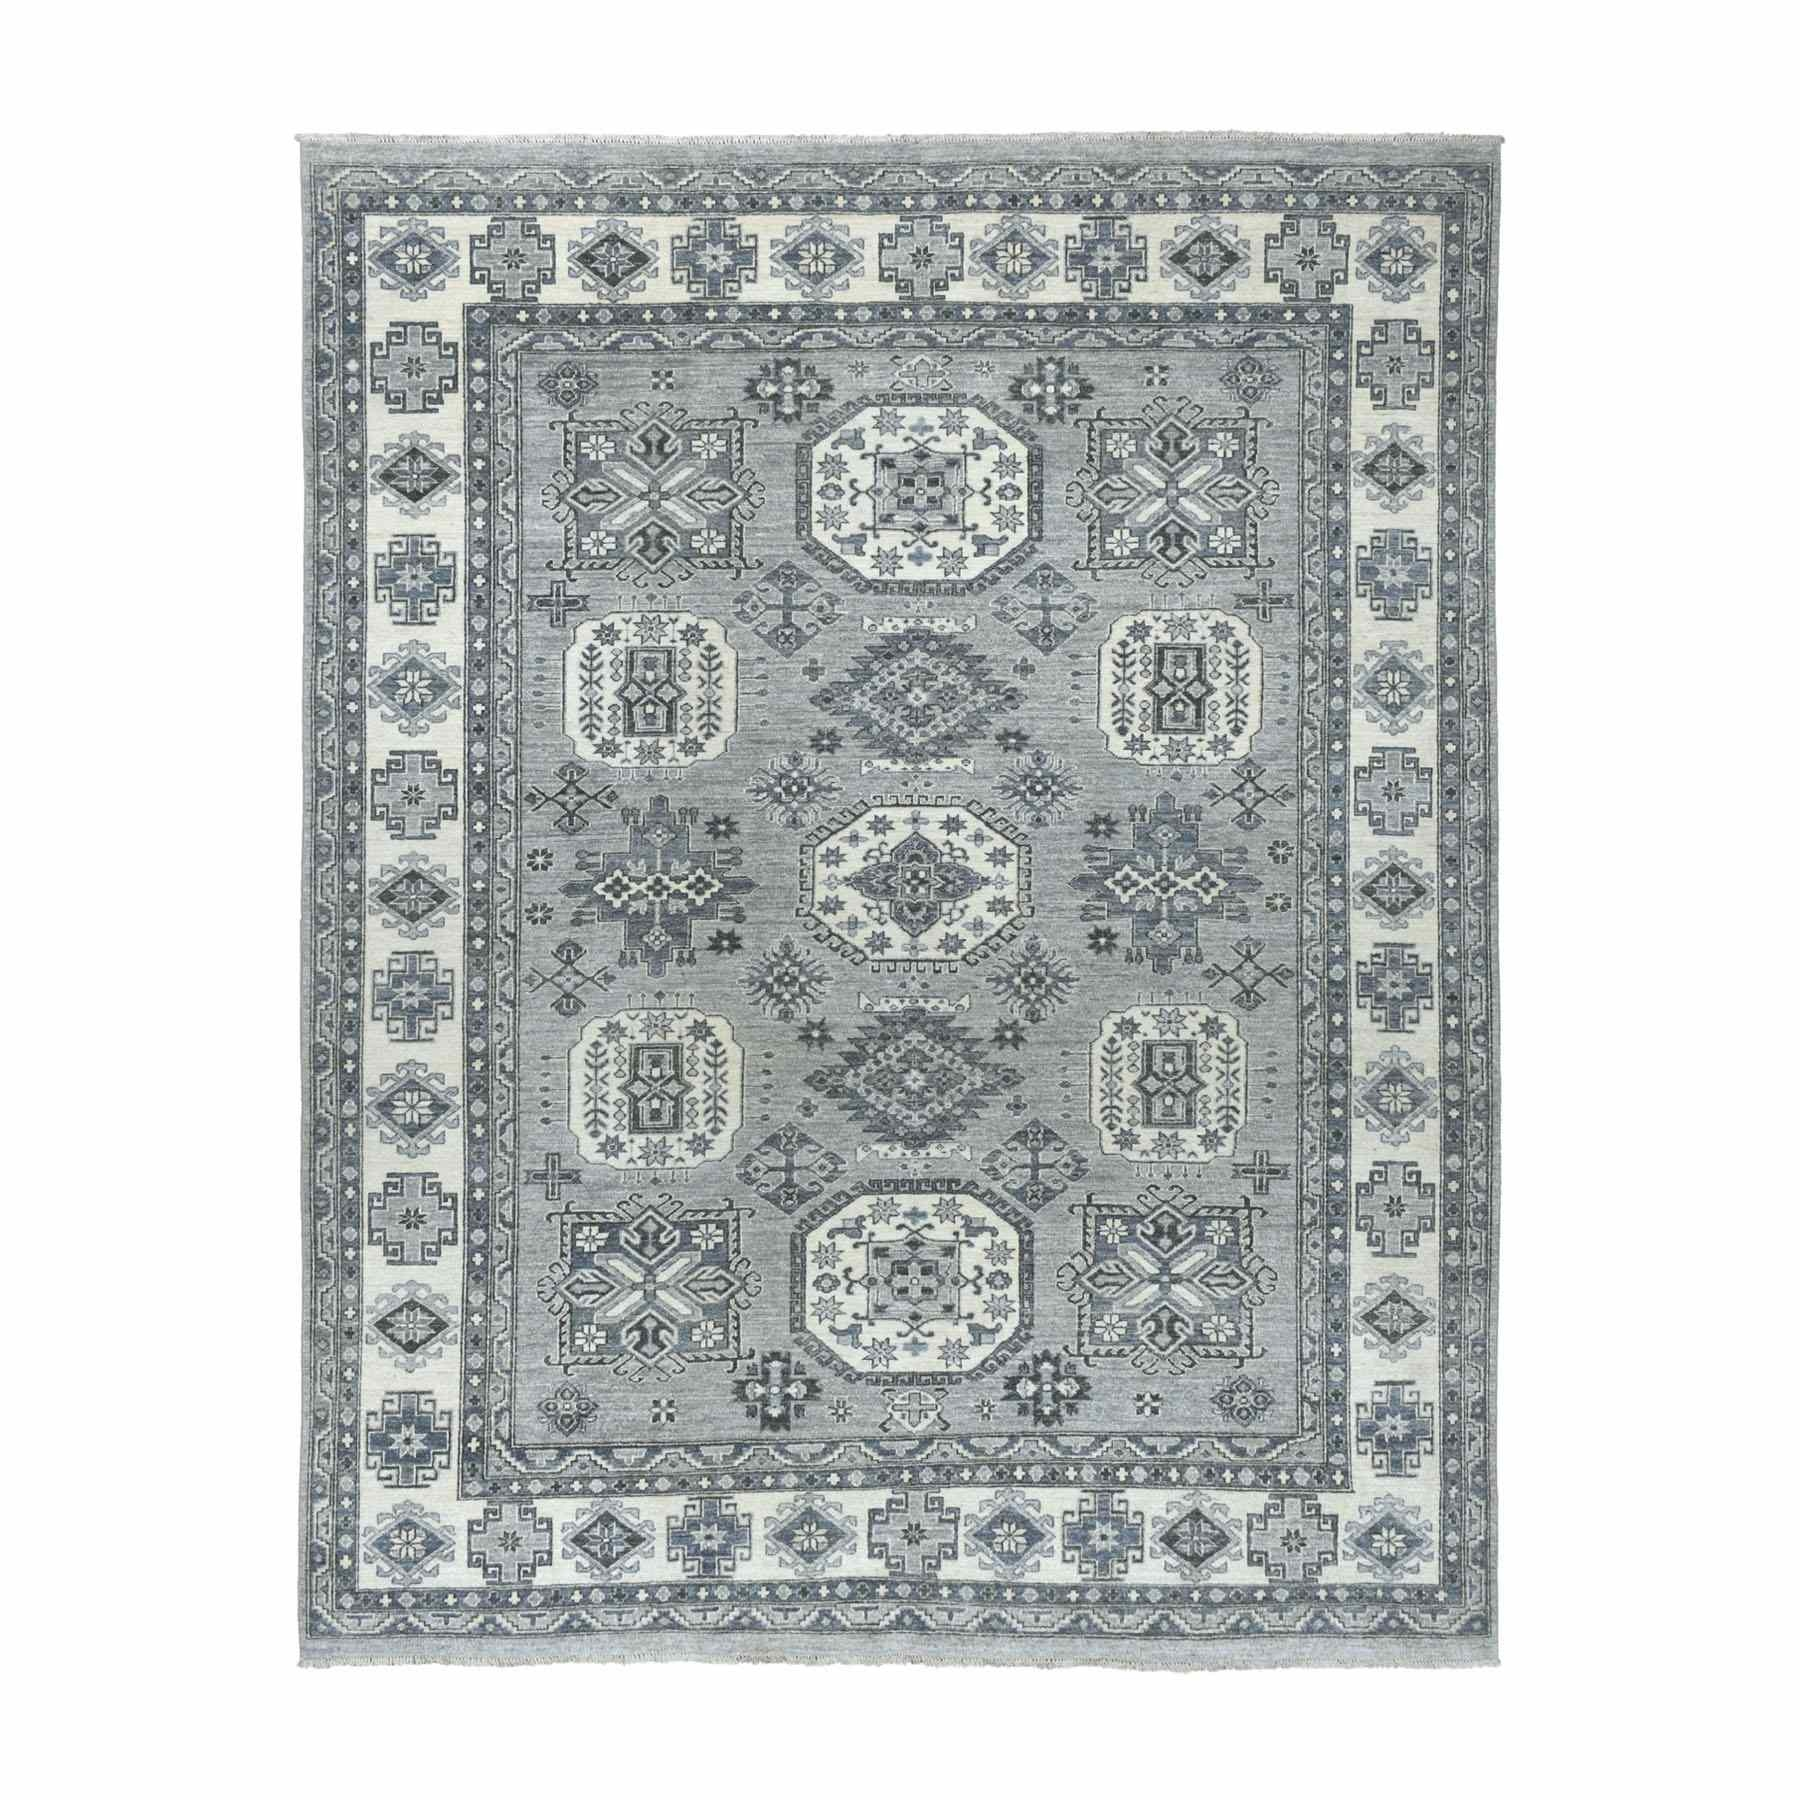 8-x10- Gray Pure Wool Hand-Knotted Peshawar With Karajeh Design Oriental Rug